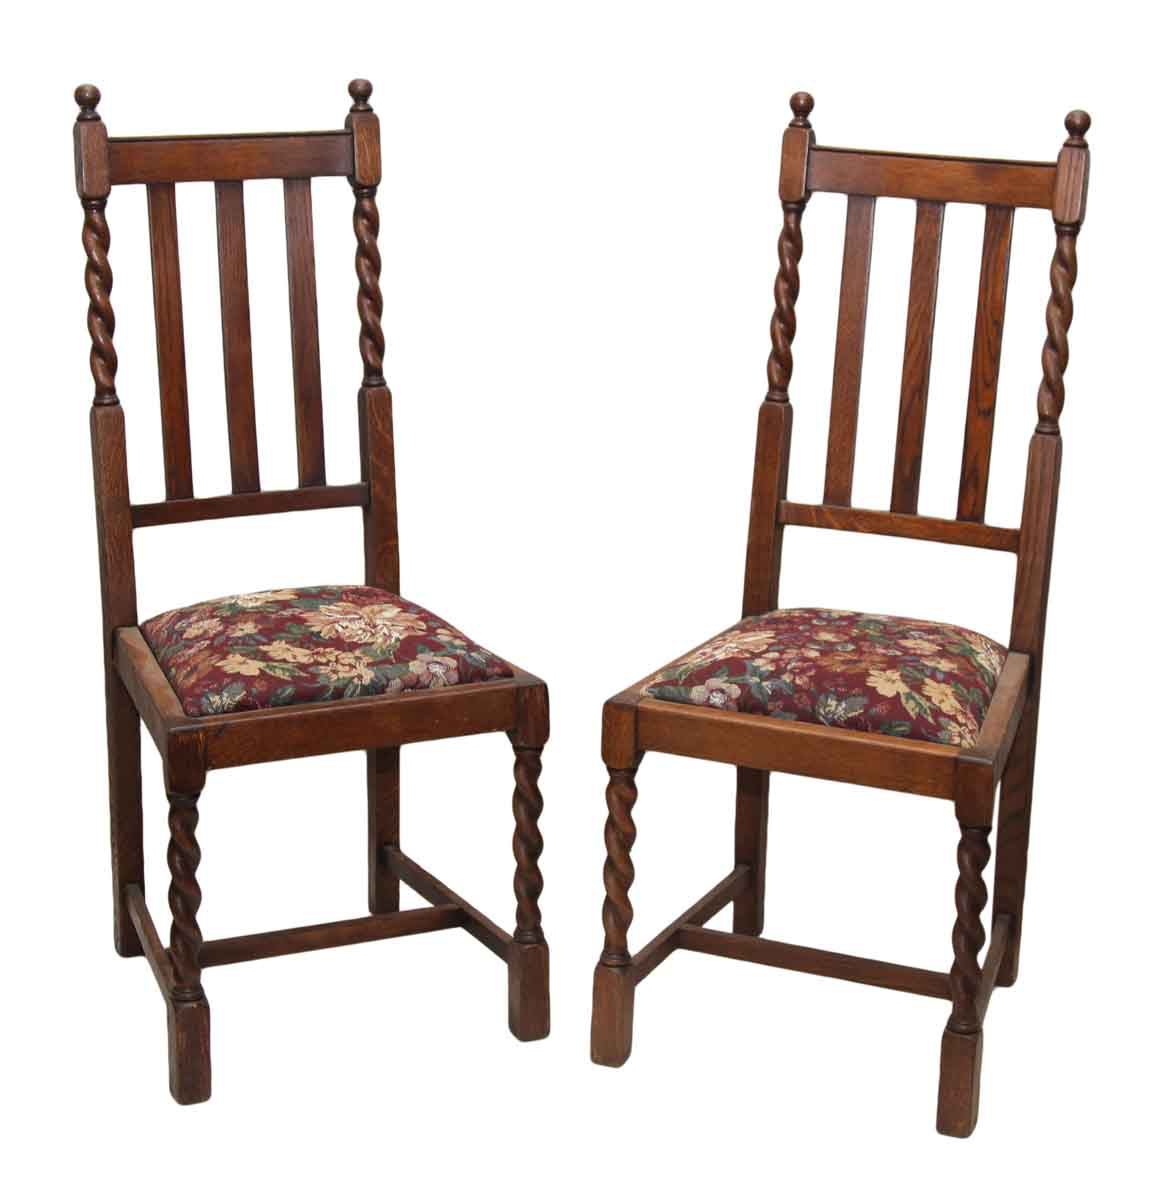 Vintage Wooden Kitchen Chairs: Pair Of Wooden Chairs With Floral Seat & Braided Details